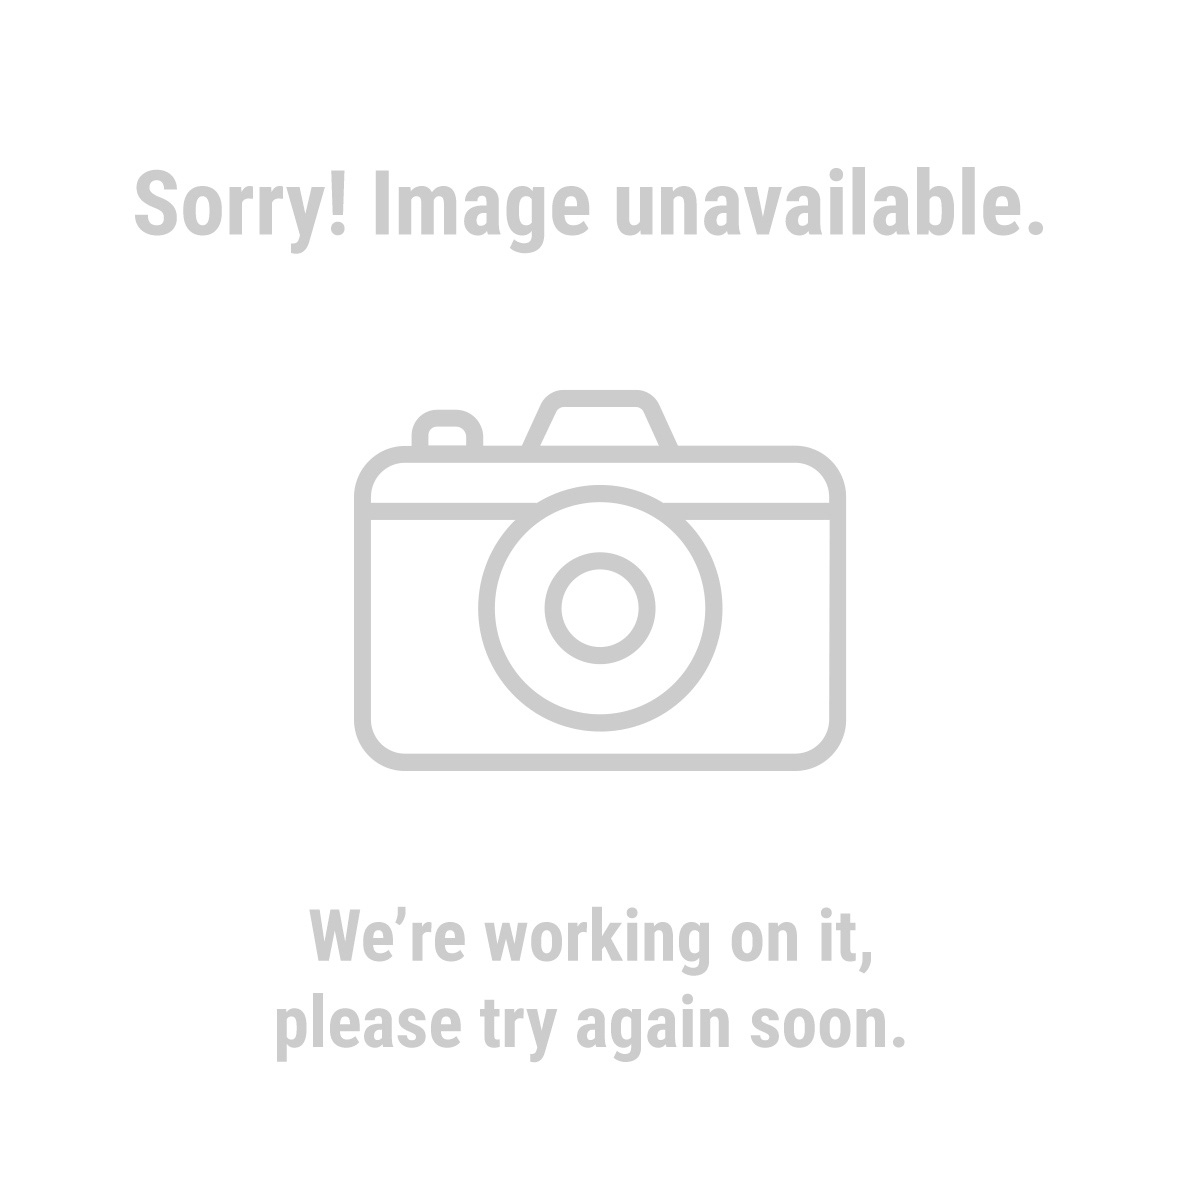 """Central-Machinery 37822 6"""" Bench Grinder with Gooseneck Lamp"""